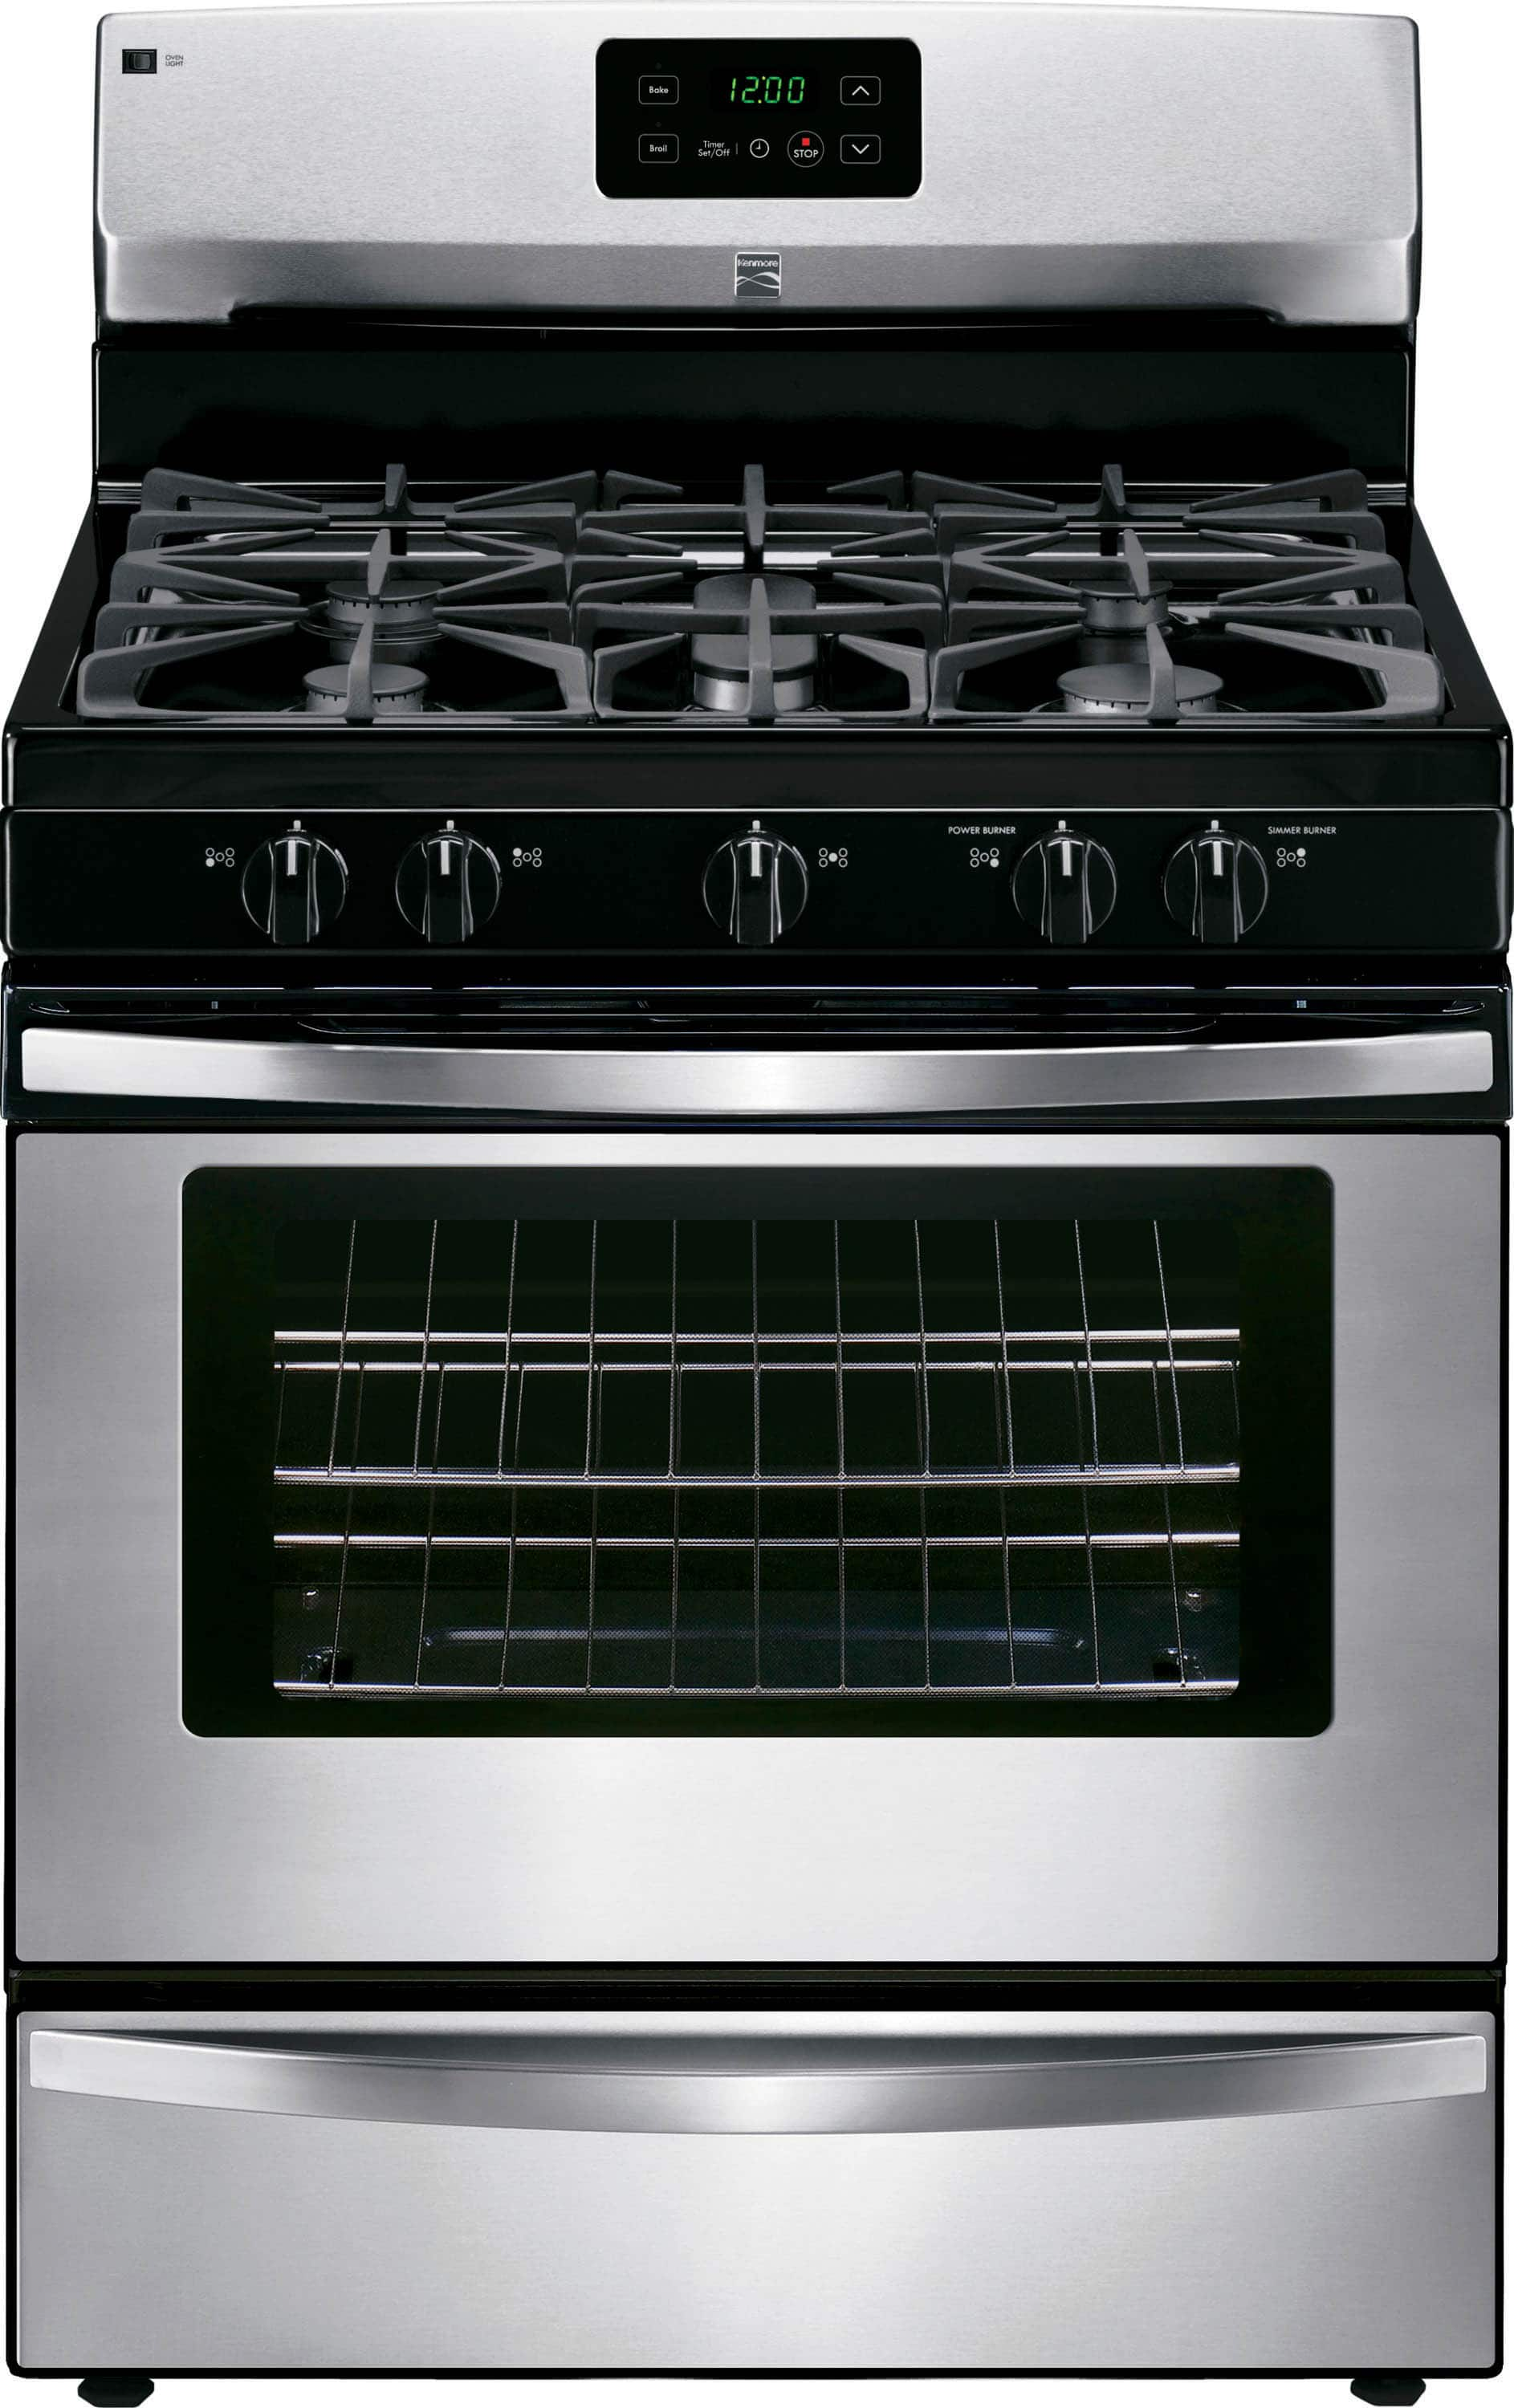 Kenmore 4.2 cu. ft. Stainless Steel Gas Range Oven w/ Broil & Serve Drawer $399 + Free Store Pickup